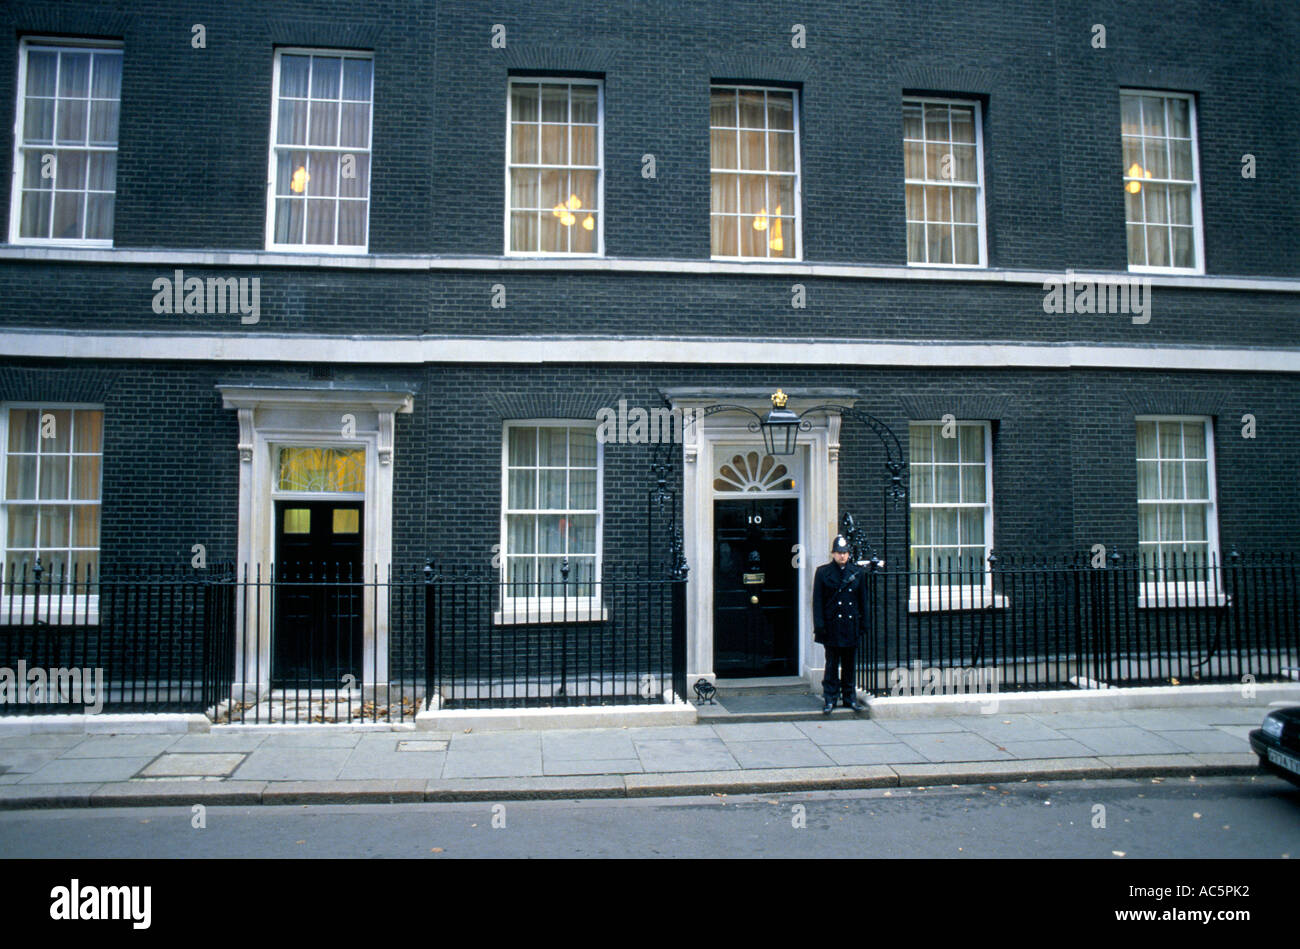 10 downing street london official residence of british prime minister stock photo royalty free. Black Bedroom Furniture Sets. Home Design Ideas